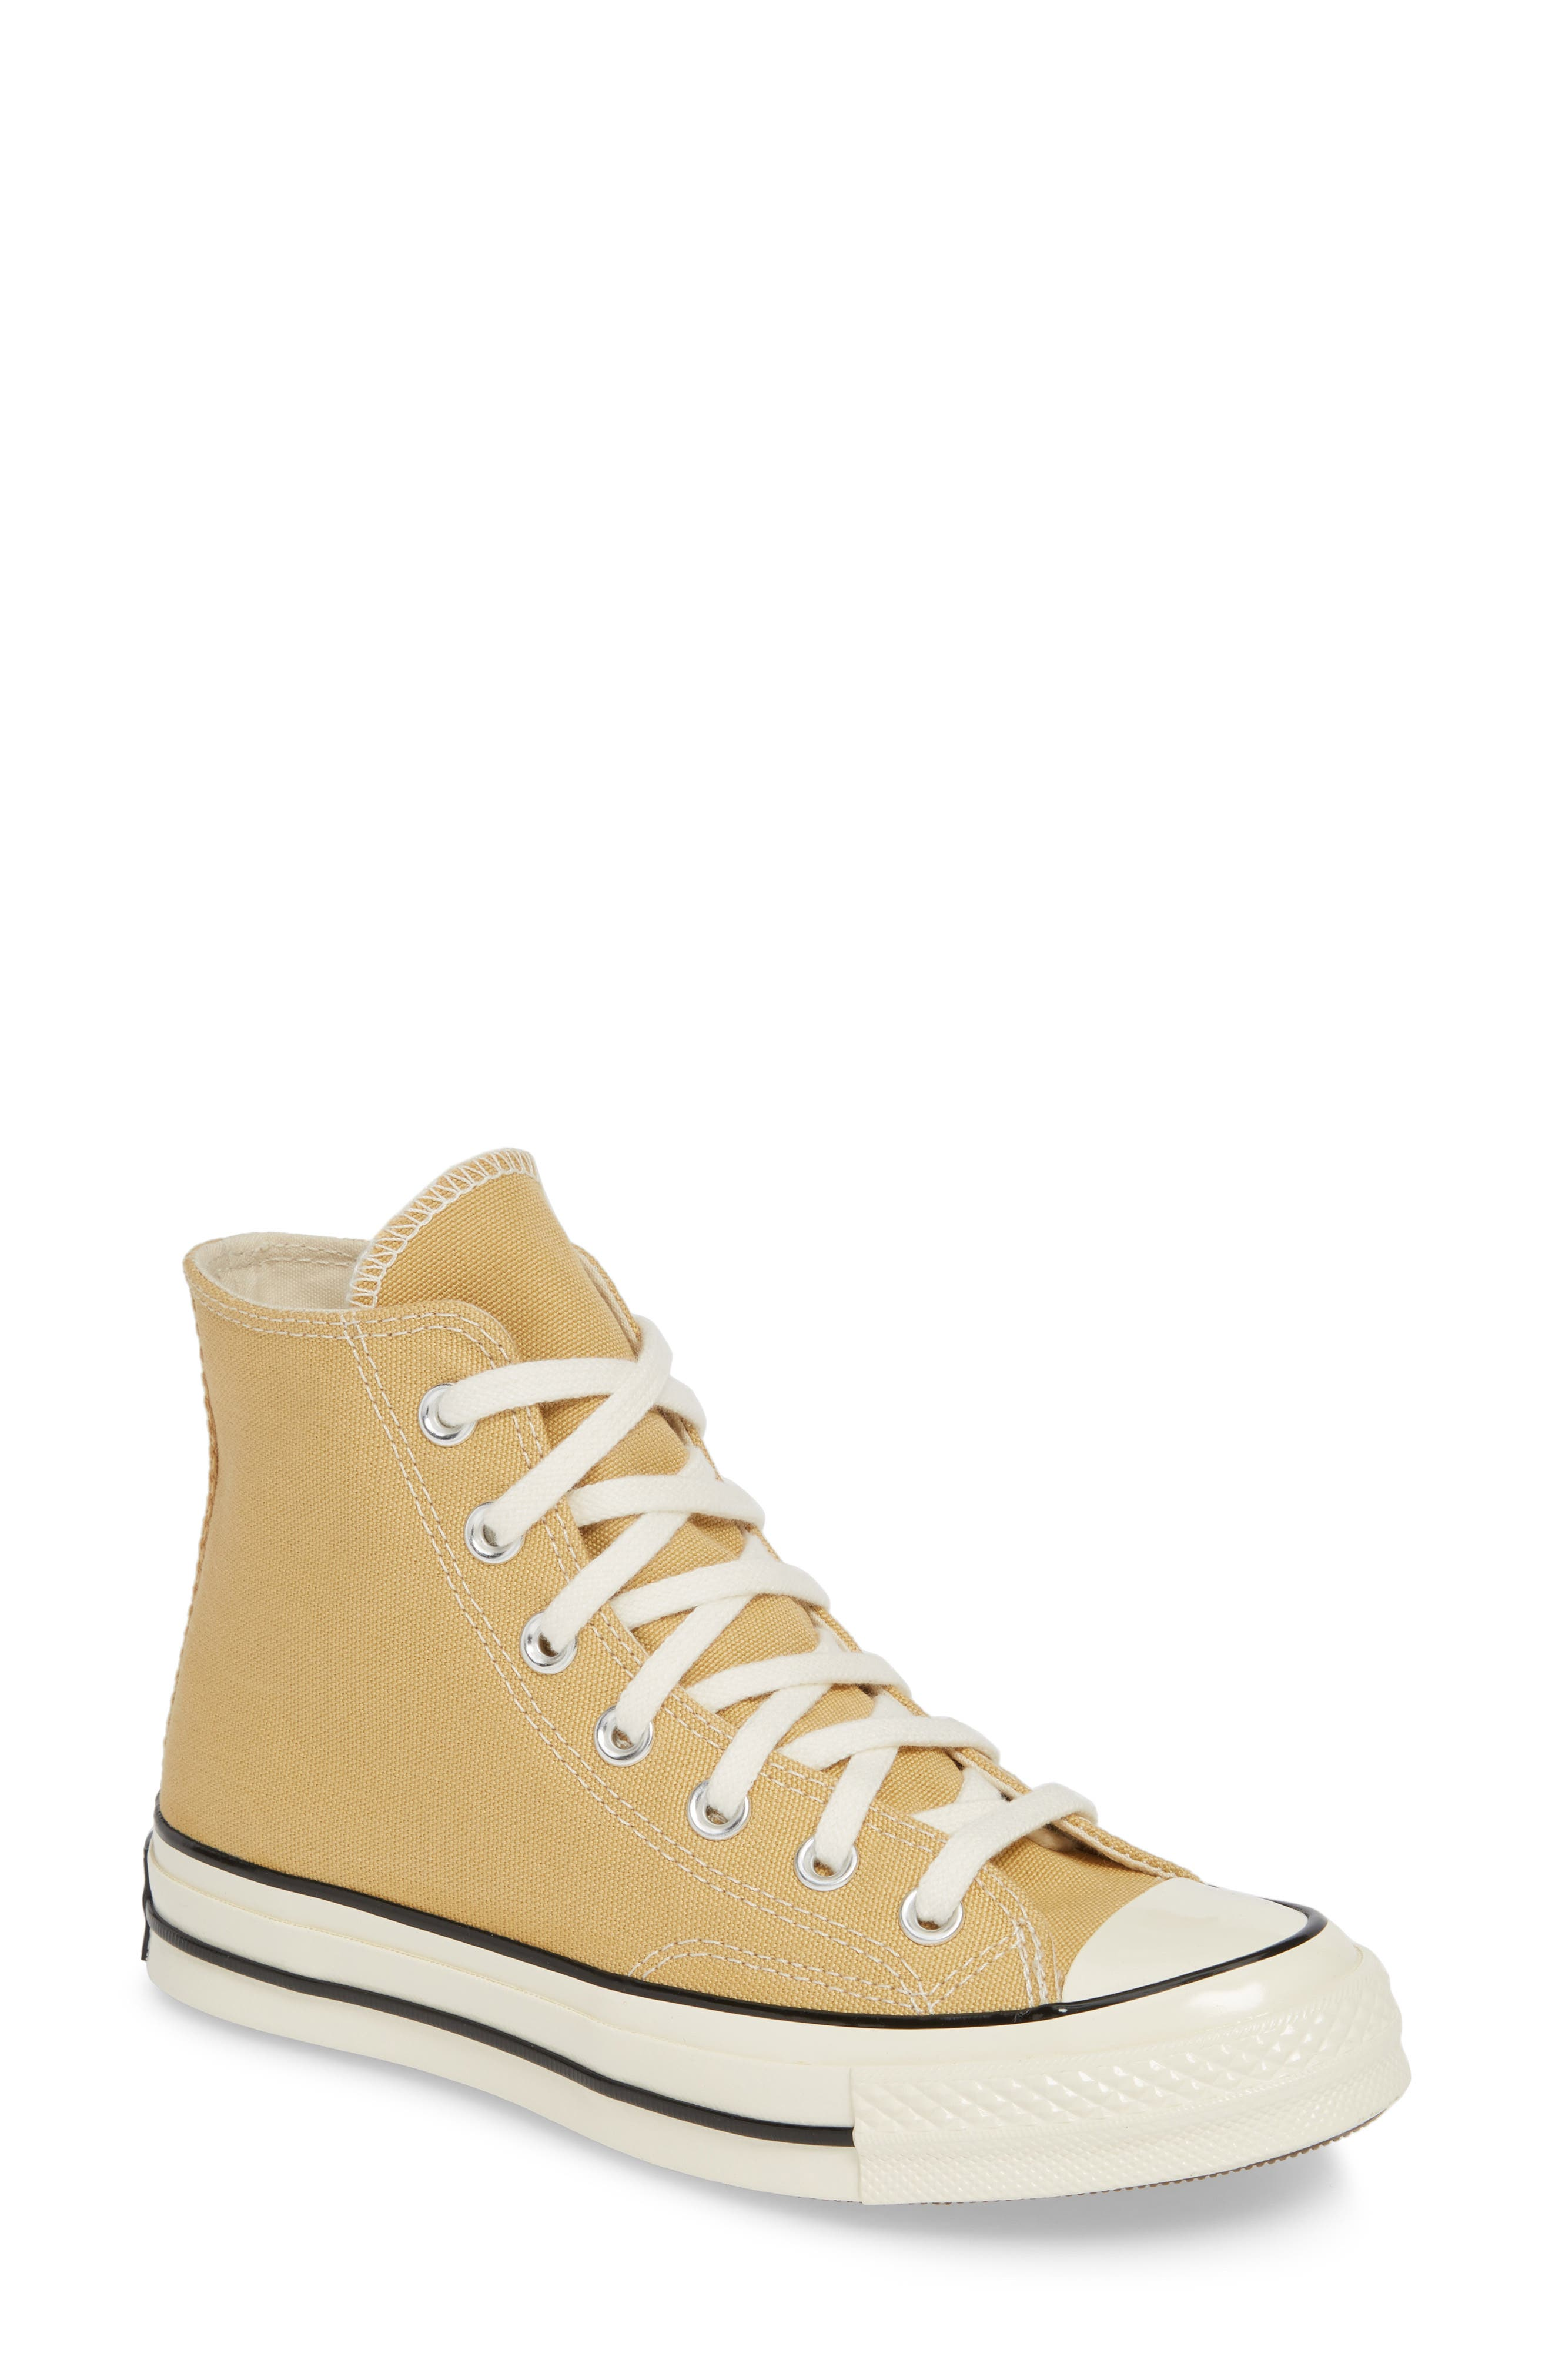 CONVERSE Chuck Taylor<sup>®</sup> All Star<sup>®</sup> 70 High Top Sneaker, Main, color, CLUB GOLD/ EGRET/ BLACK